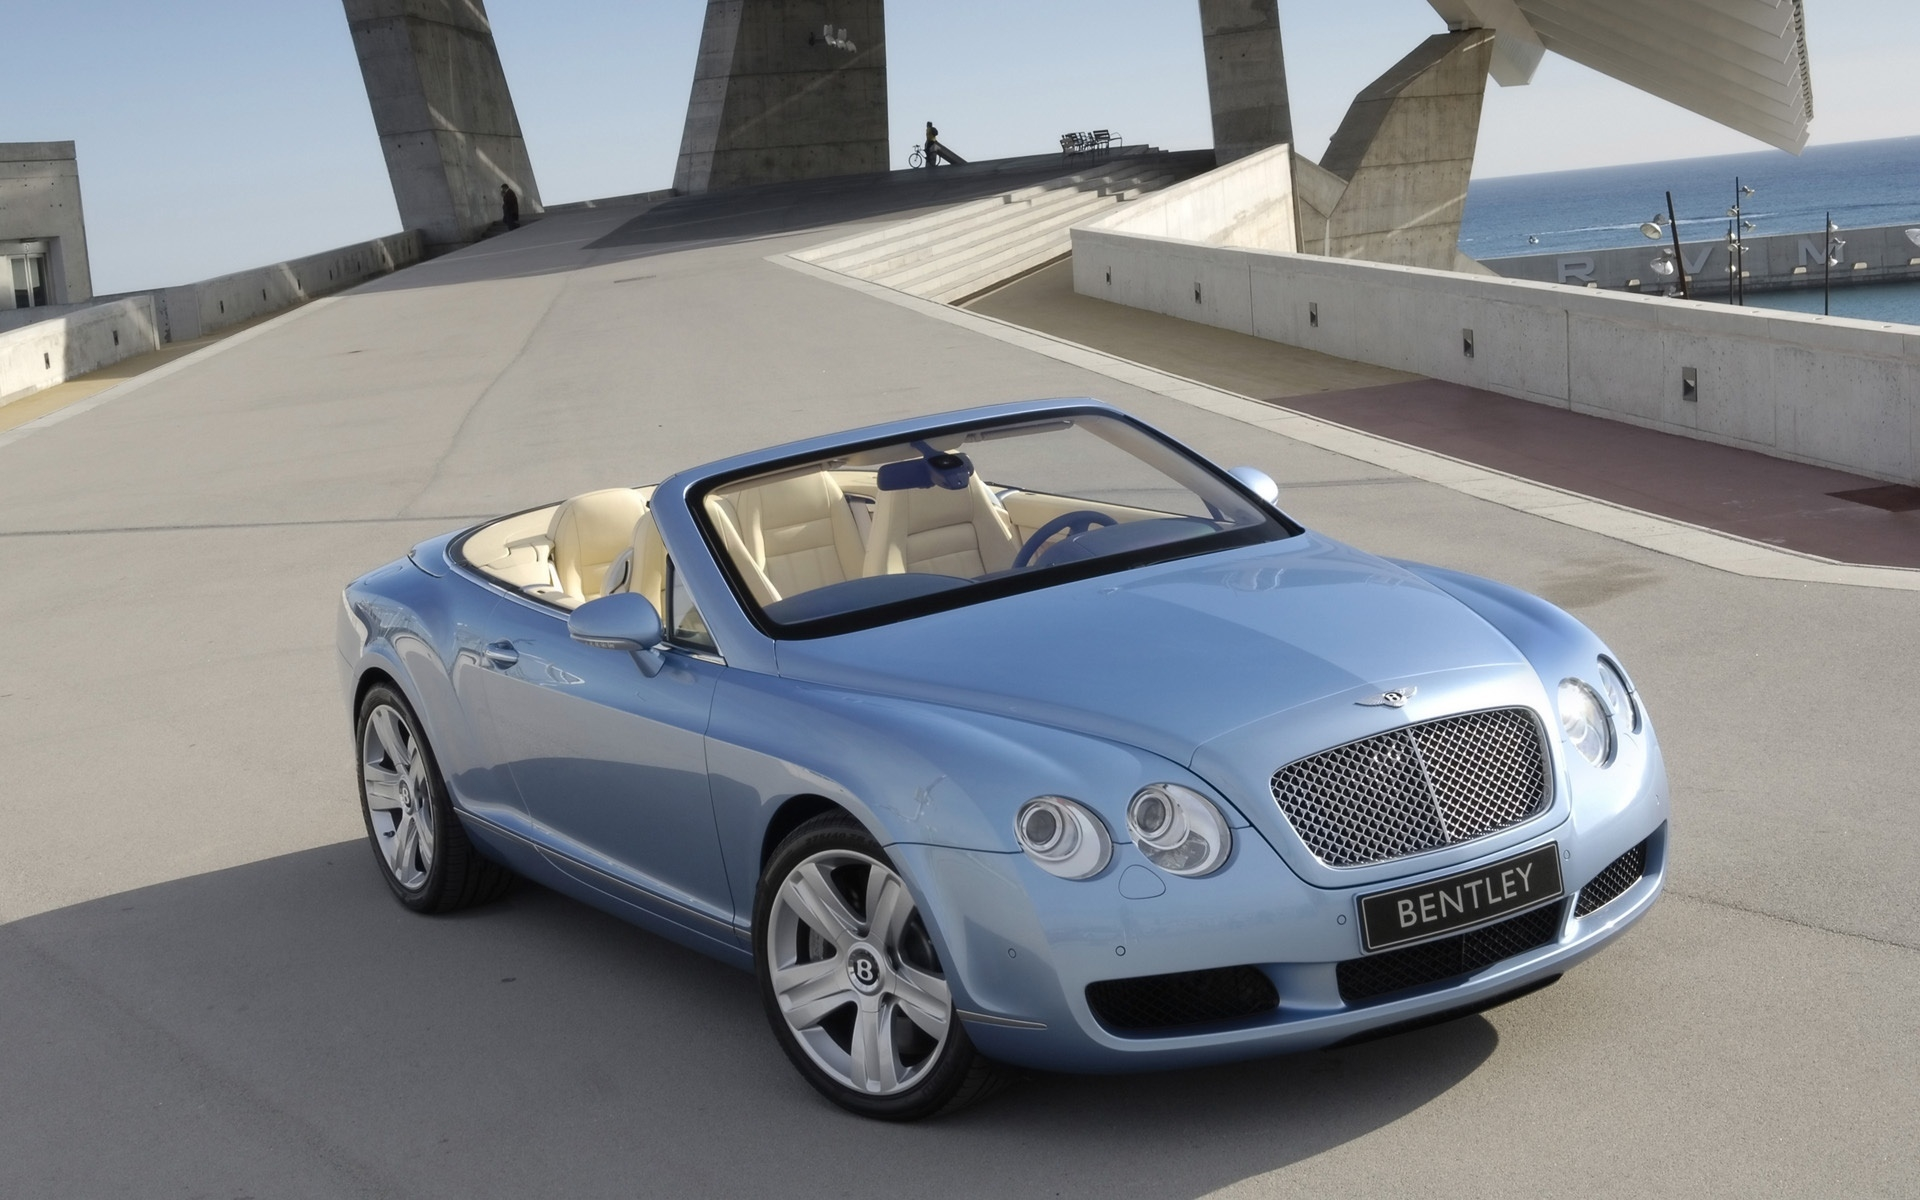 Bentley Continental GTC 2007 for 1920 x 1200 widescreen resolution